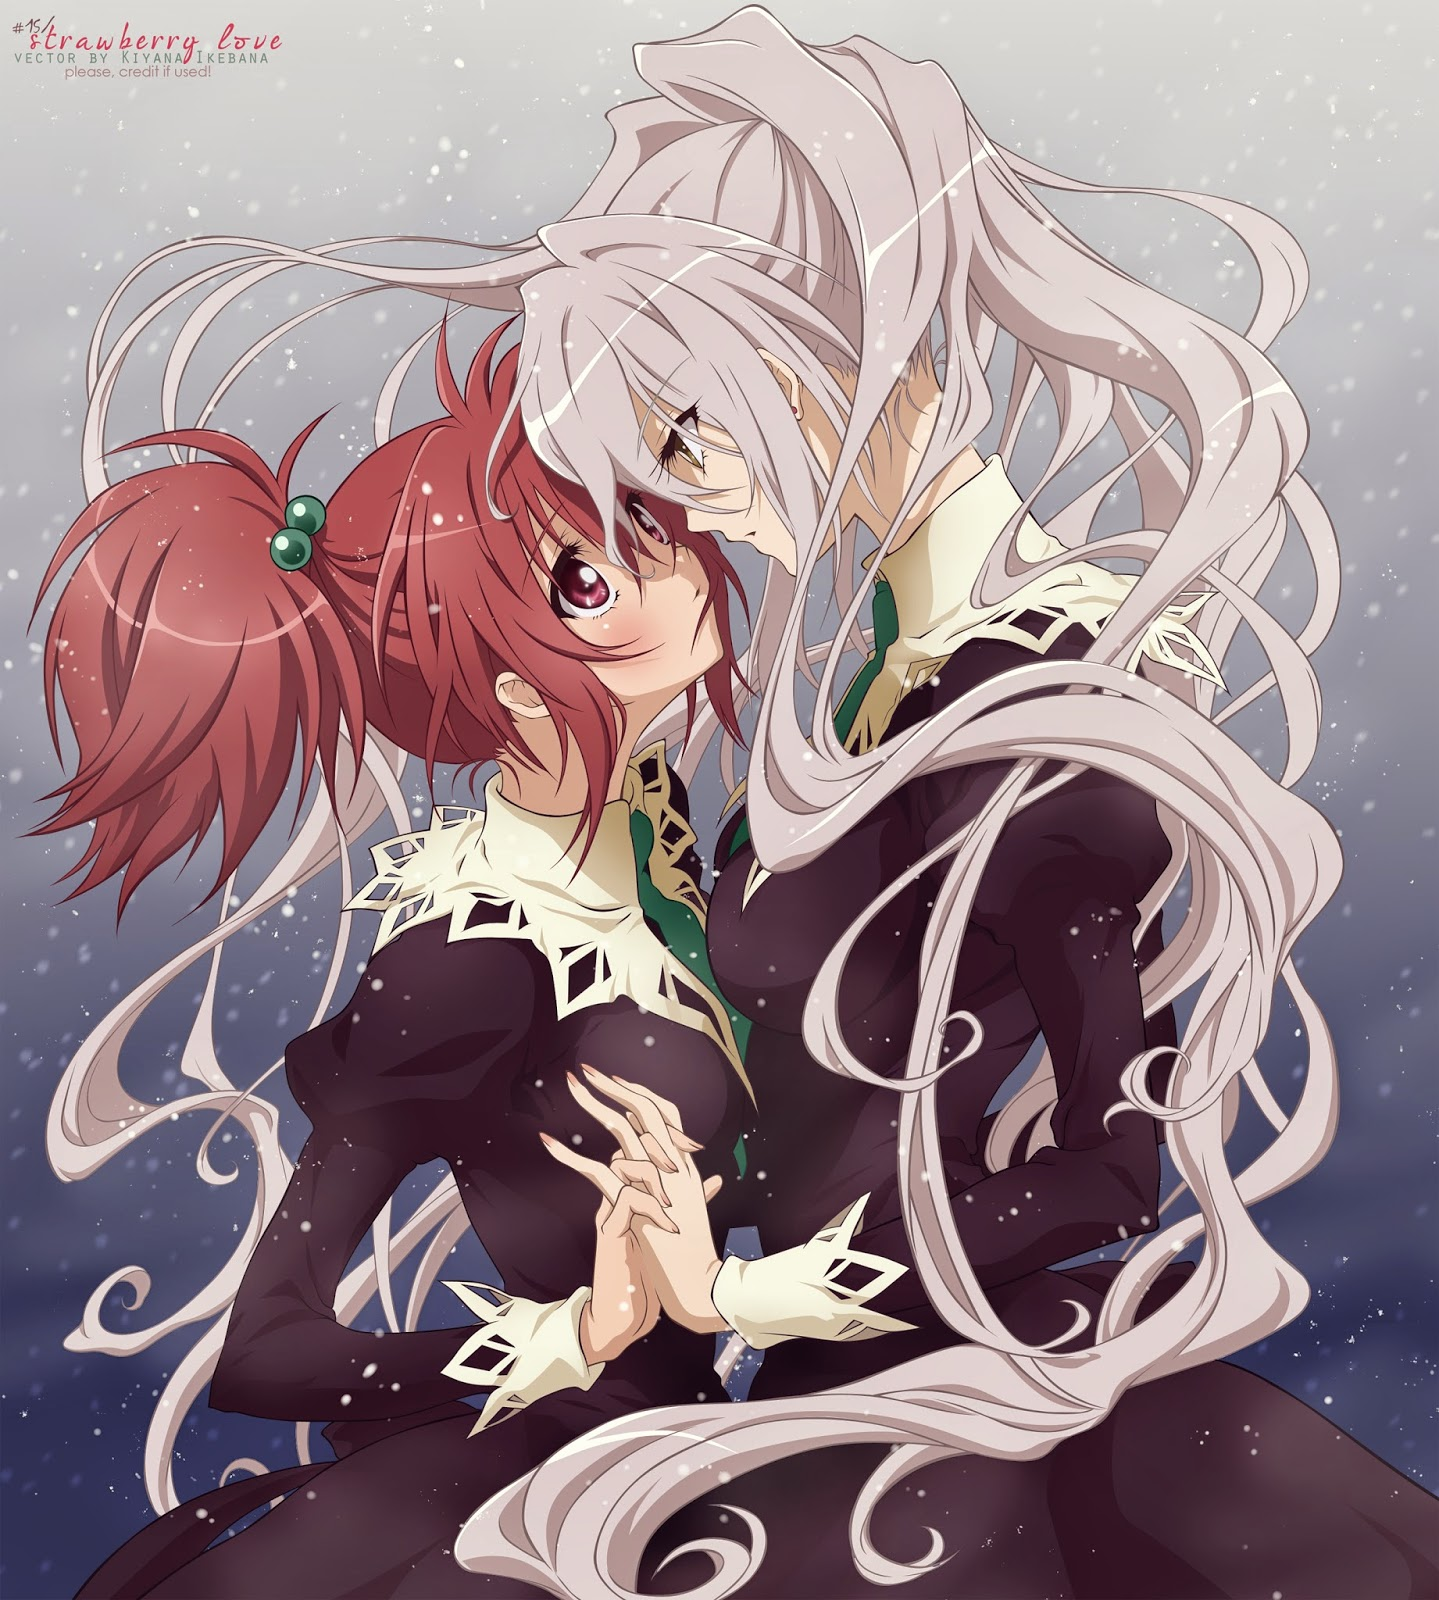 Anime Cute Lesbians eclecticdude's anime reviews: anime review no. 95